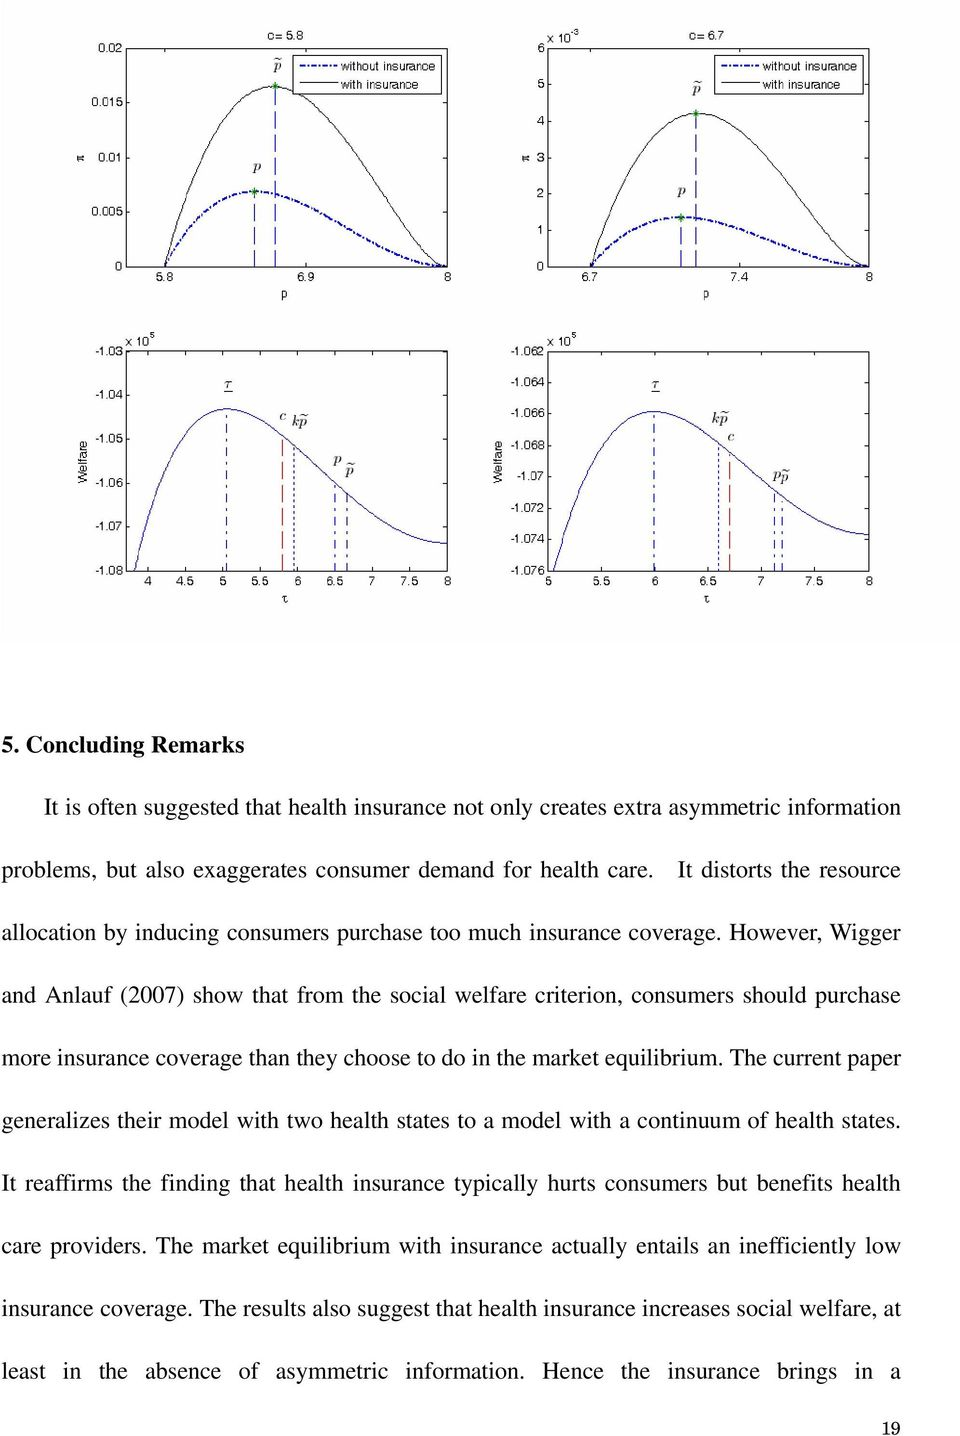 However, Wigger and Anlauf (2007) how that from the ocial welfare criterion, conumer hould purchae more inurance coverage than they chooe to do in the market equilibrium.